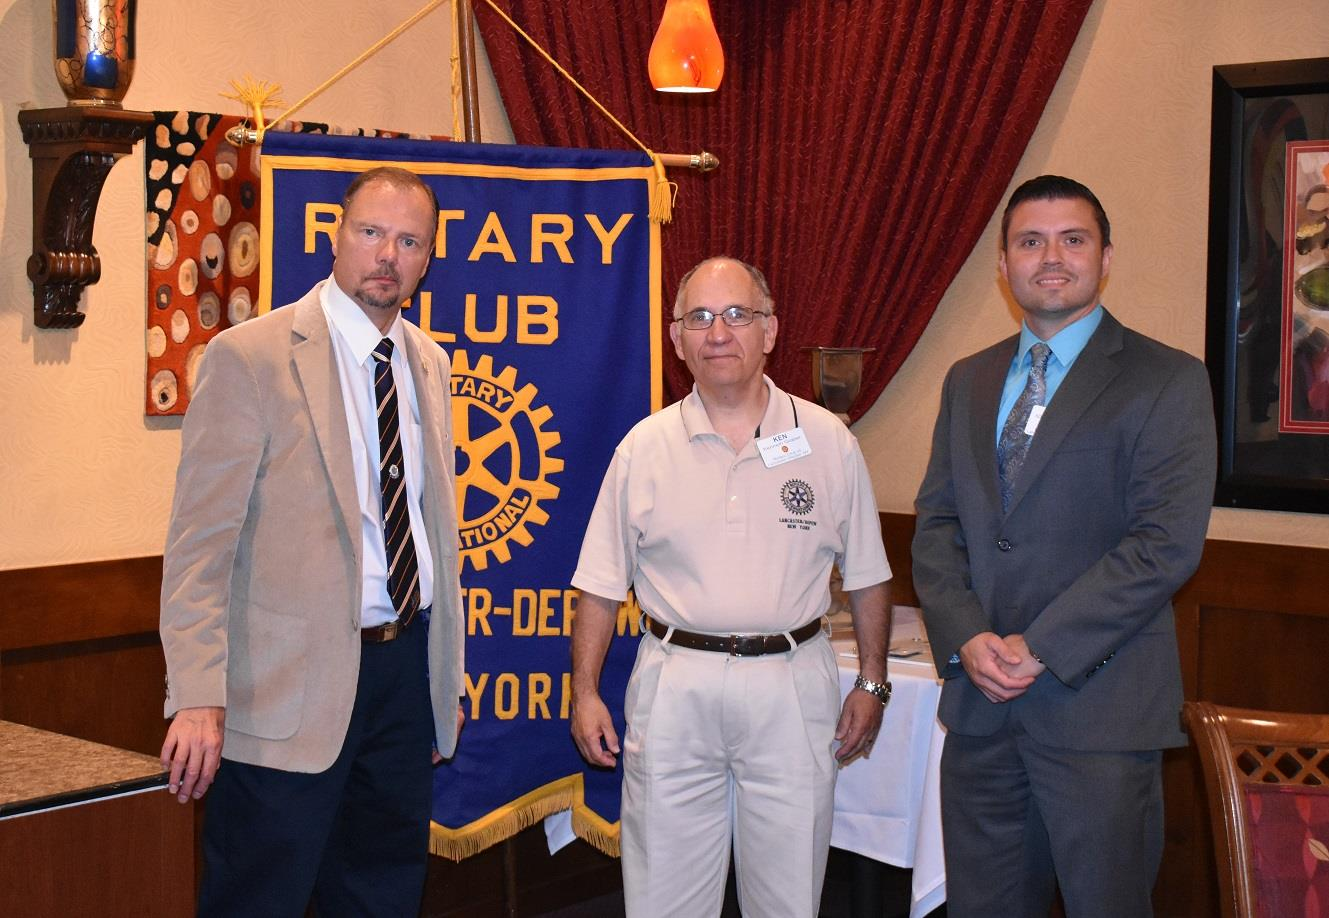 Stories Rotary District 7090 Dasi Neck Tie Slim Polos Wedding Best Man Square Orange Black Club Of Lancaster Depew Held The First Meeting Their New Year On Thursday Shown Above Are Robert Benzel Immediate Past President With